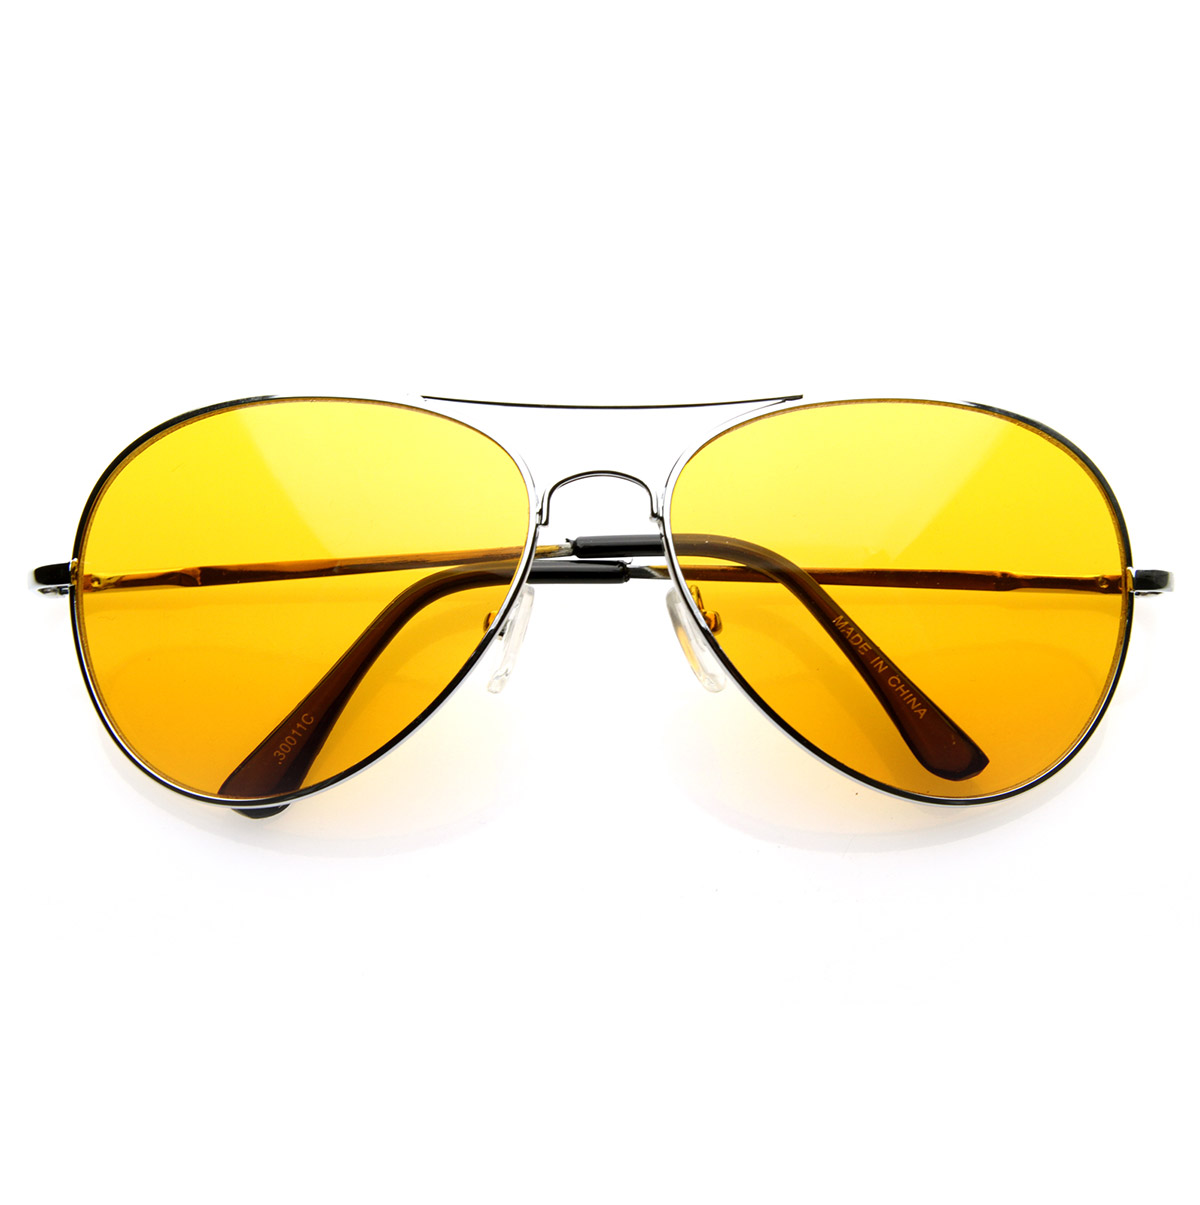 Orange Tinted Sunglasses  colorful premium silver metal aviator glasses with color lens